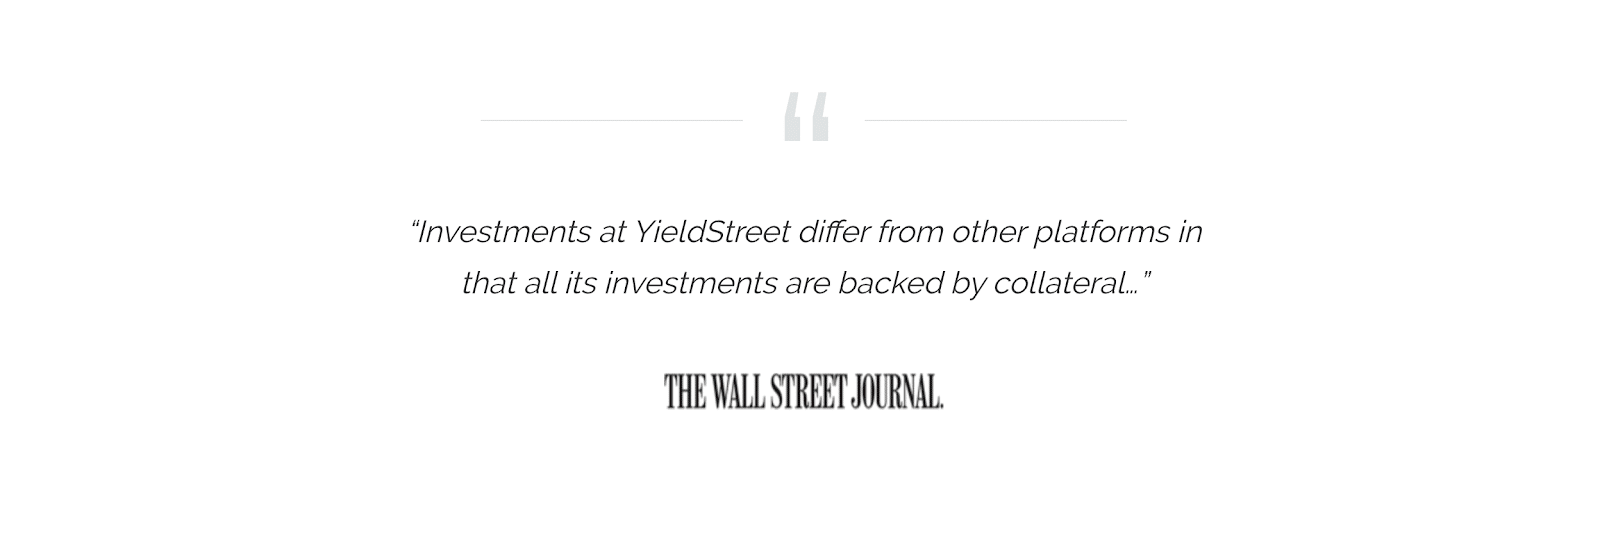 yieldstreet quoted in wall street journal